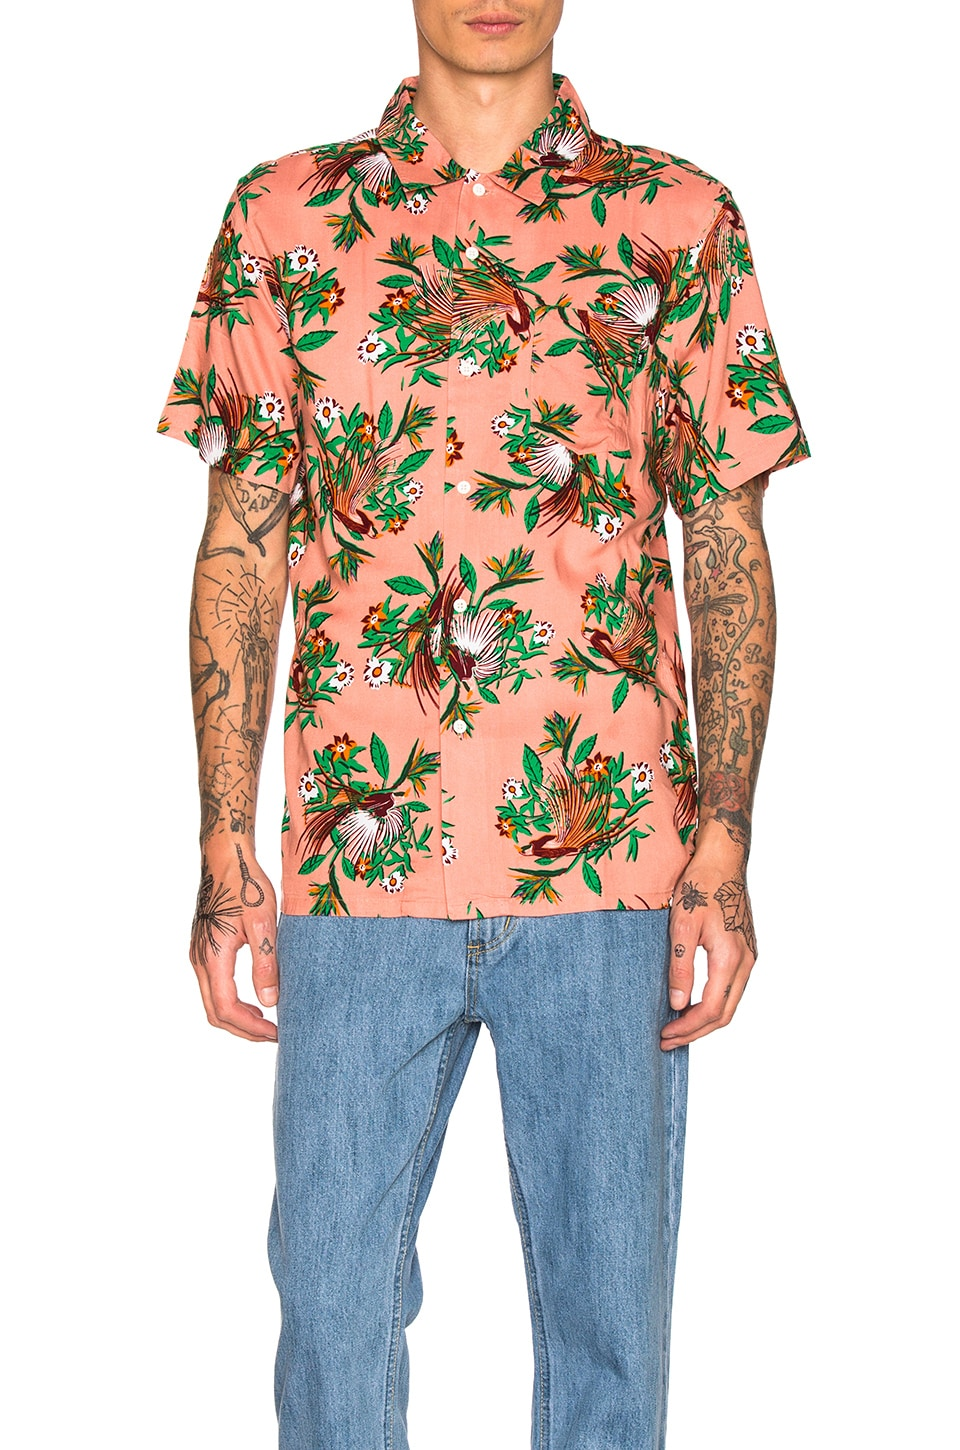 Paradise S/S Shirt by Obey